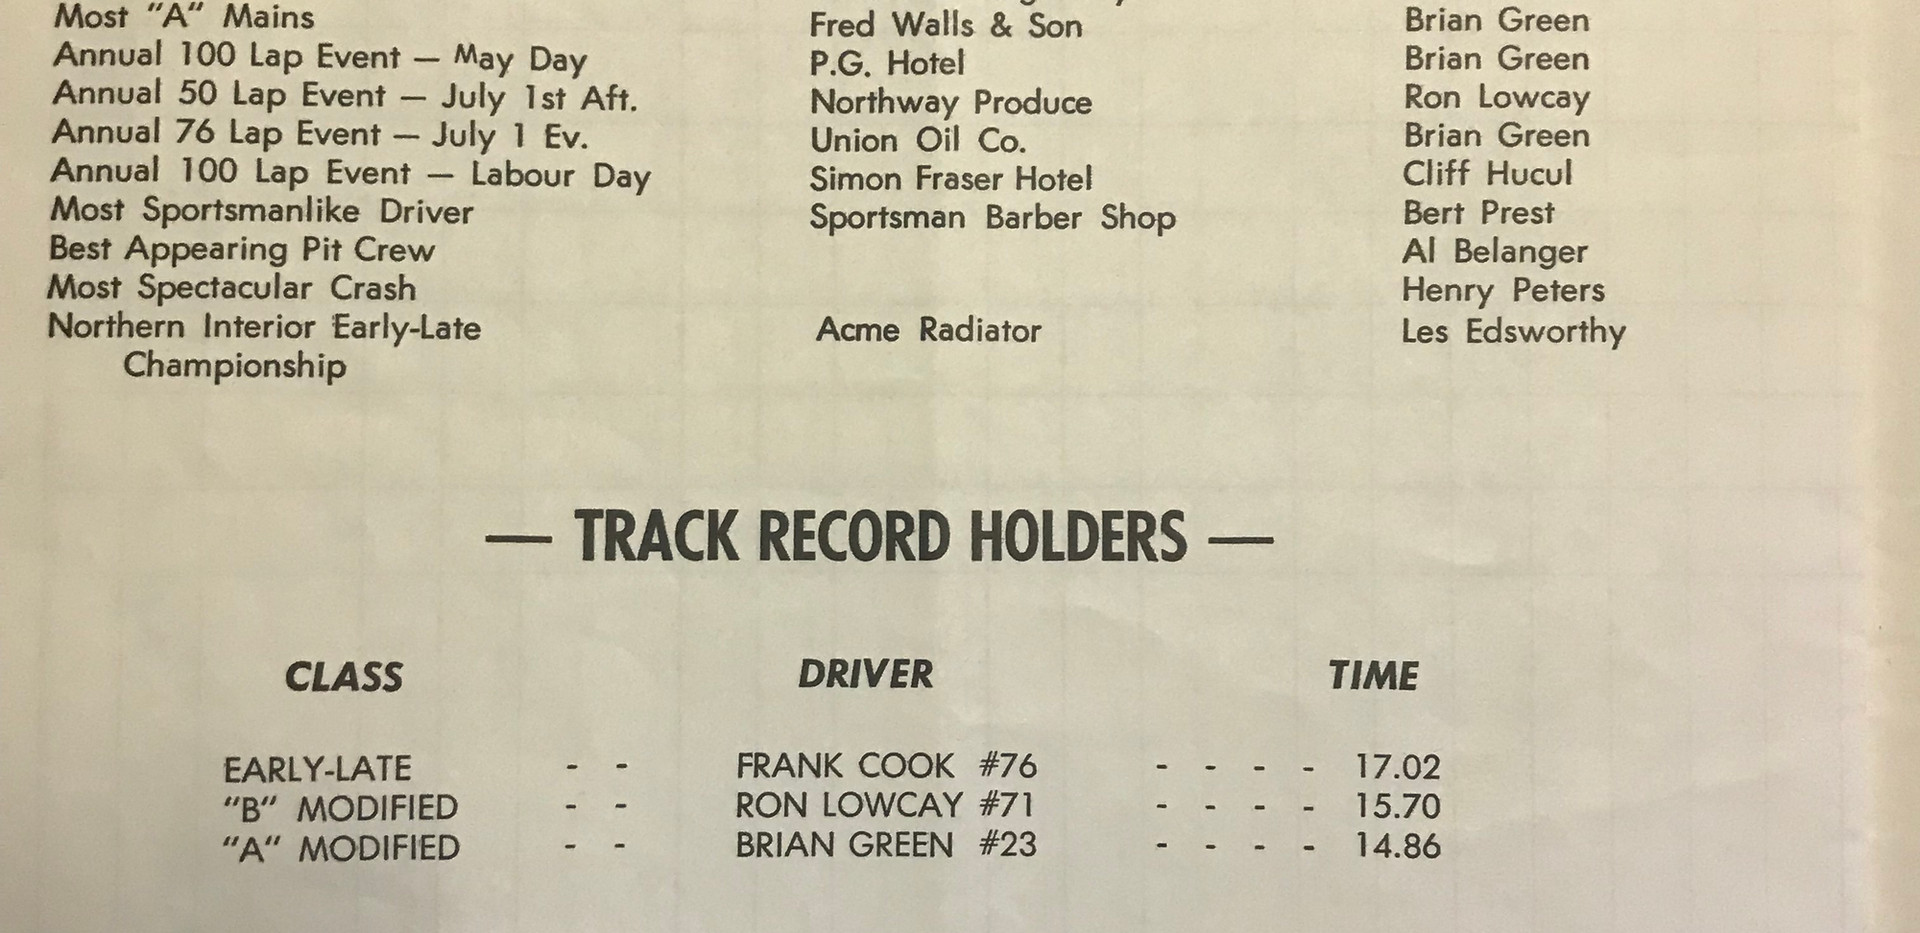 Trophy winners/track records